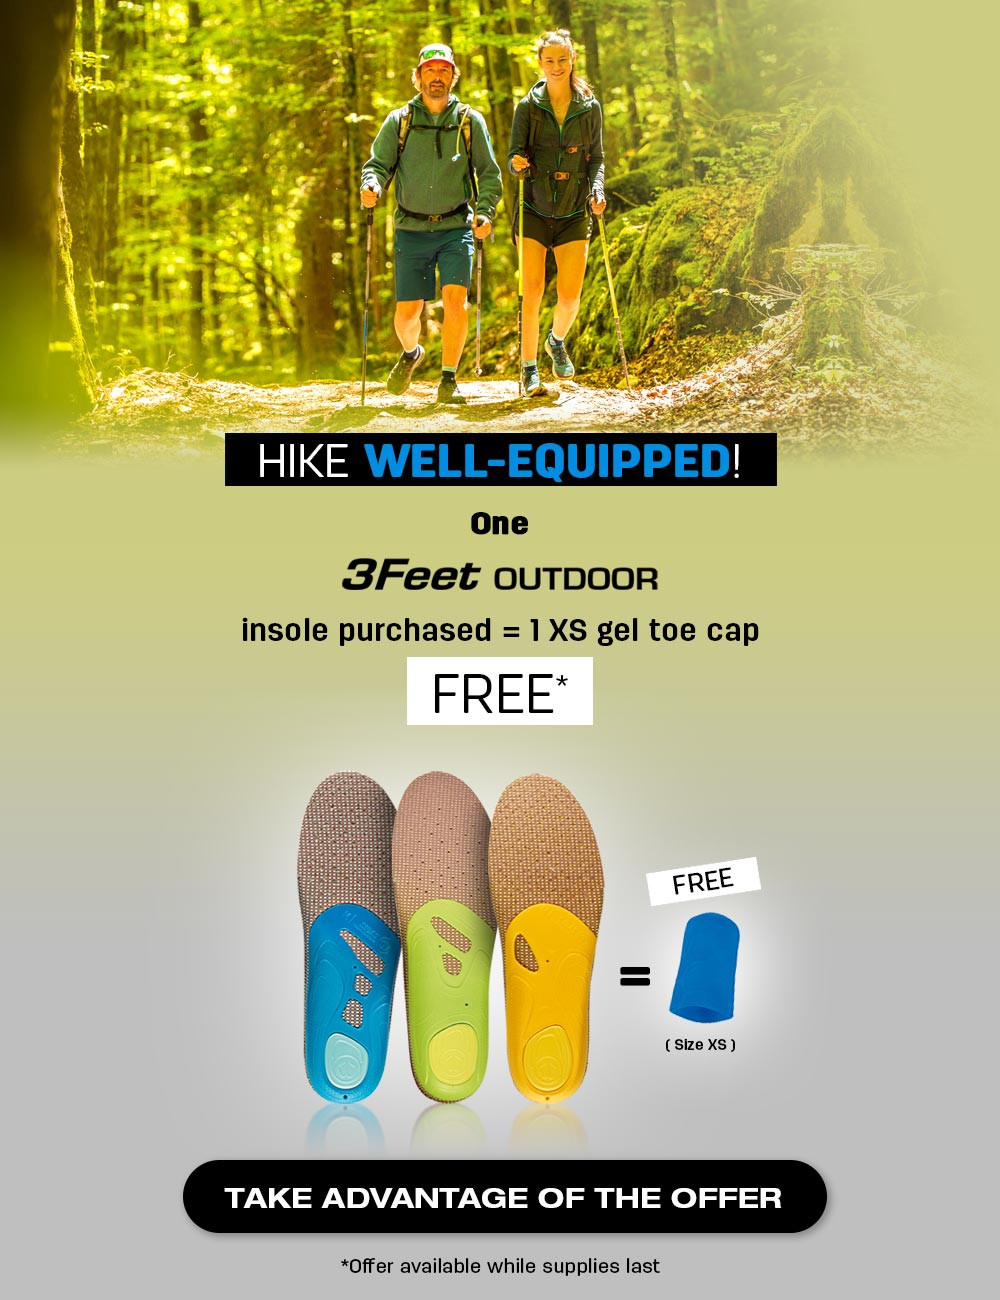 Get a free gel toe cap XS when you buy a pair or 3Feet Outdoor!